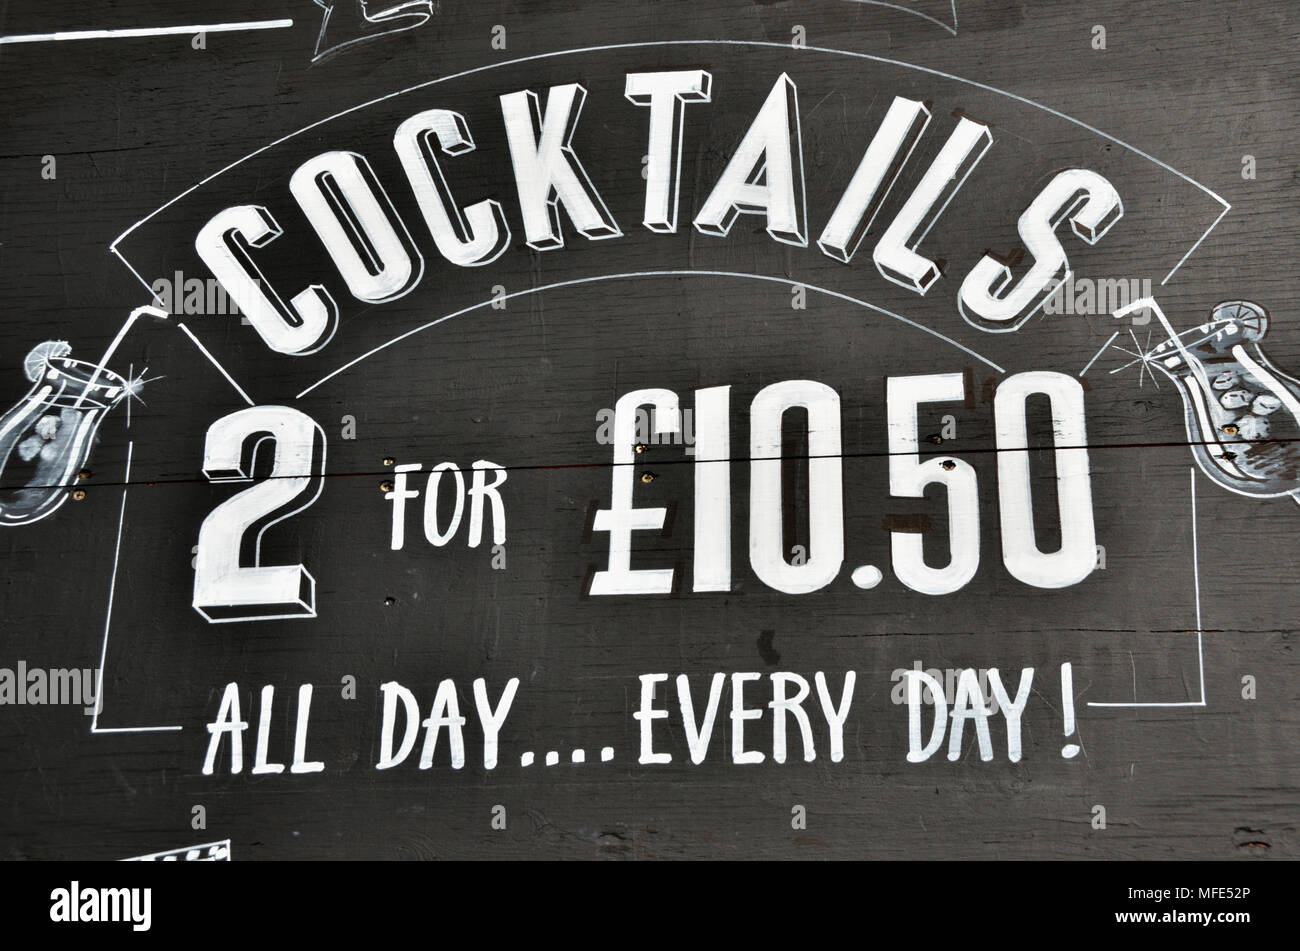 Cocktails special offer promotion outside a pub - Stock Image